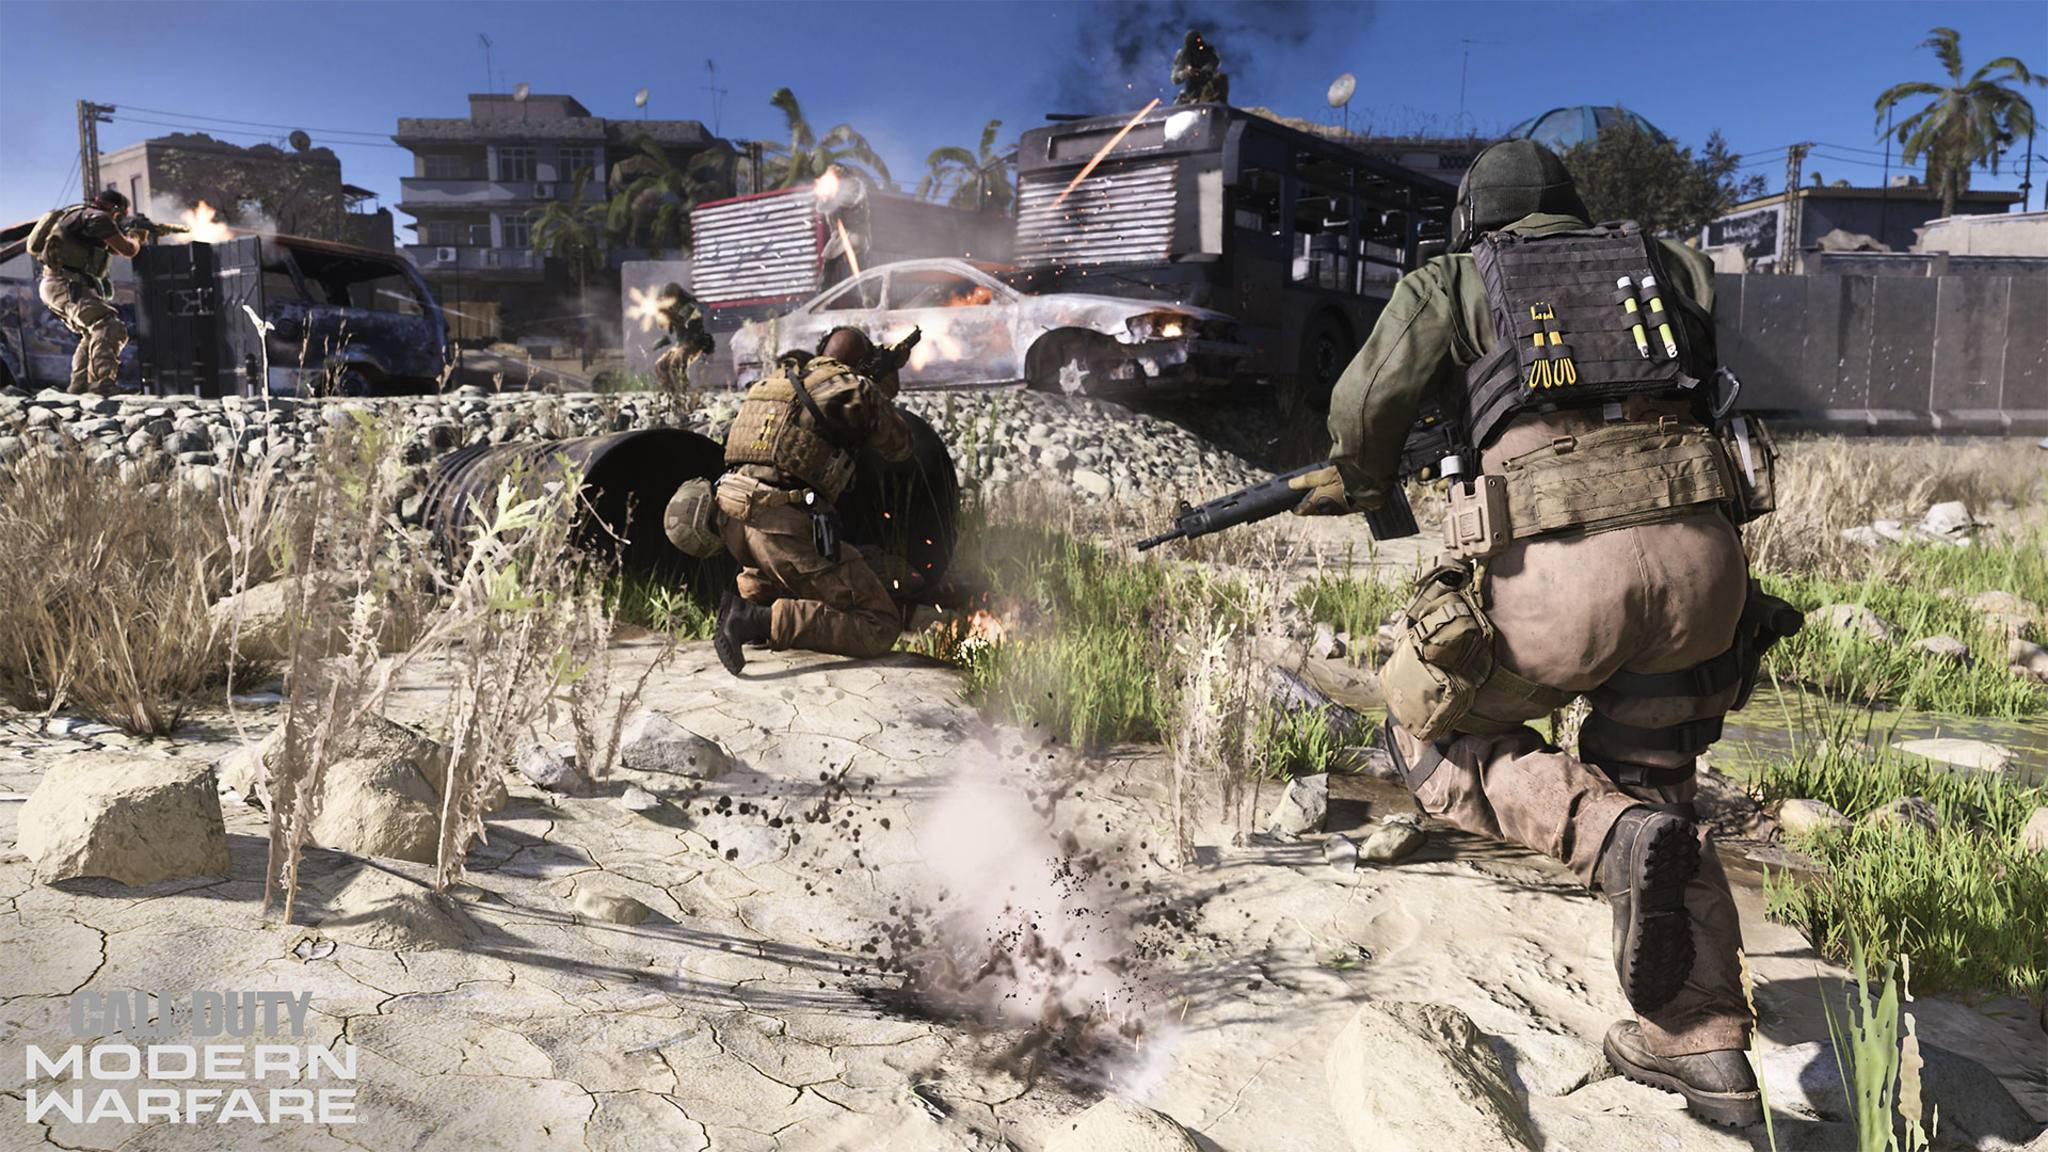 call-of-duty-modern-warfare-multiplayer-screenshot-02